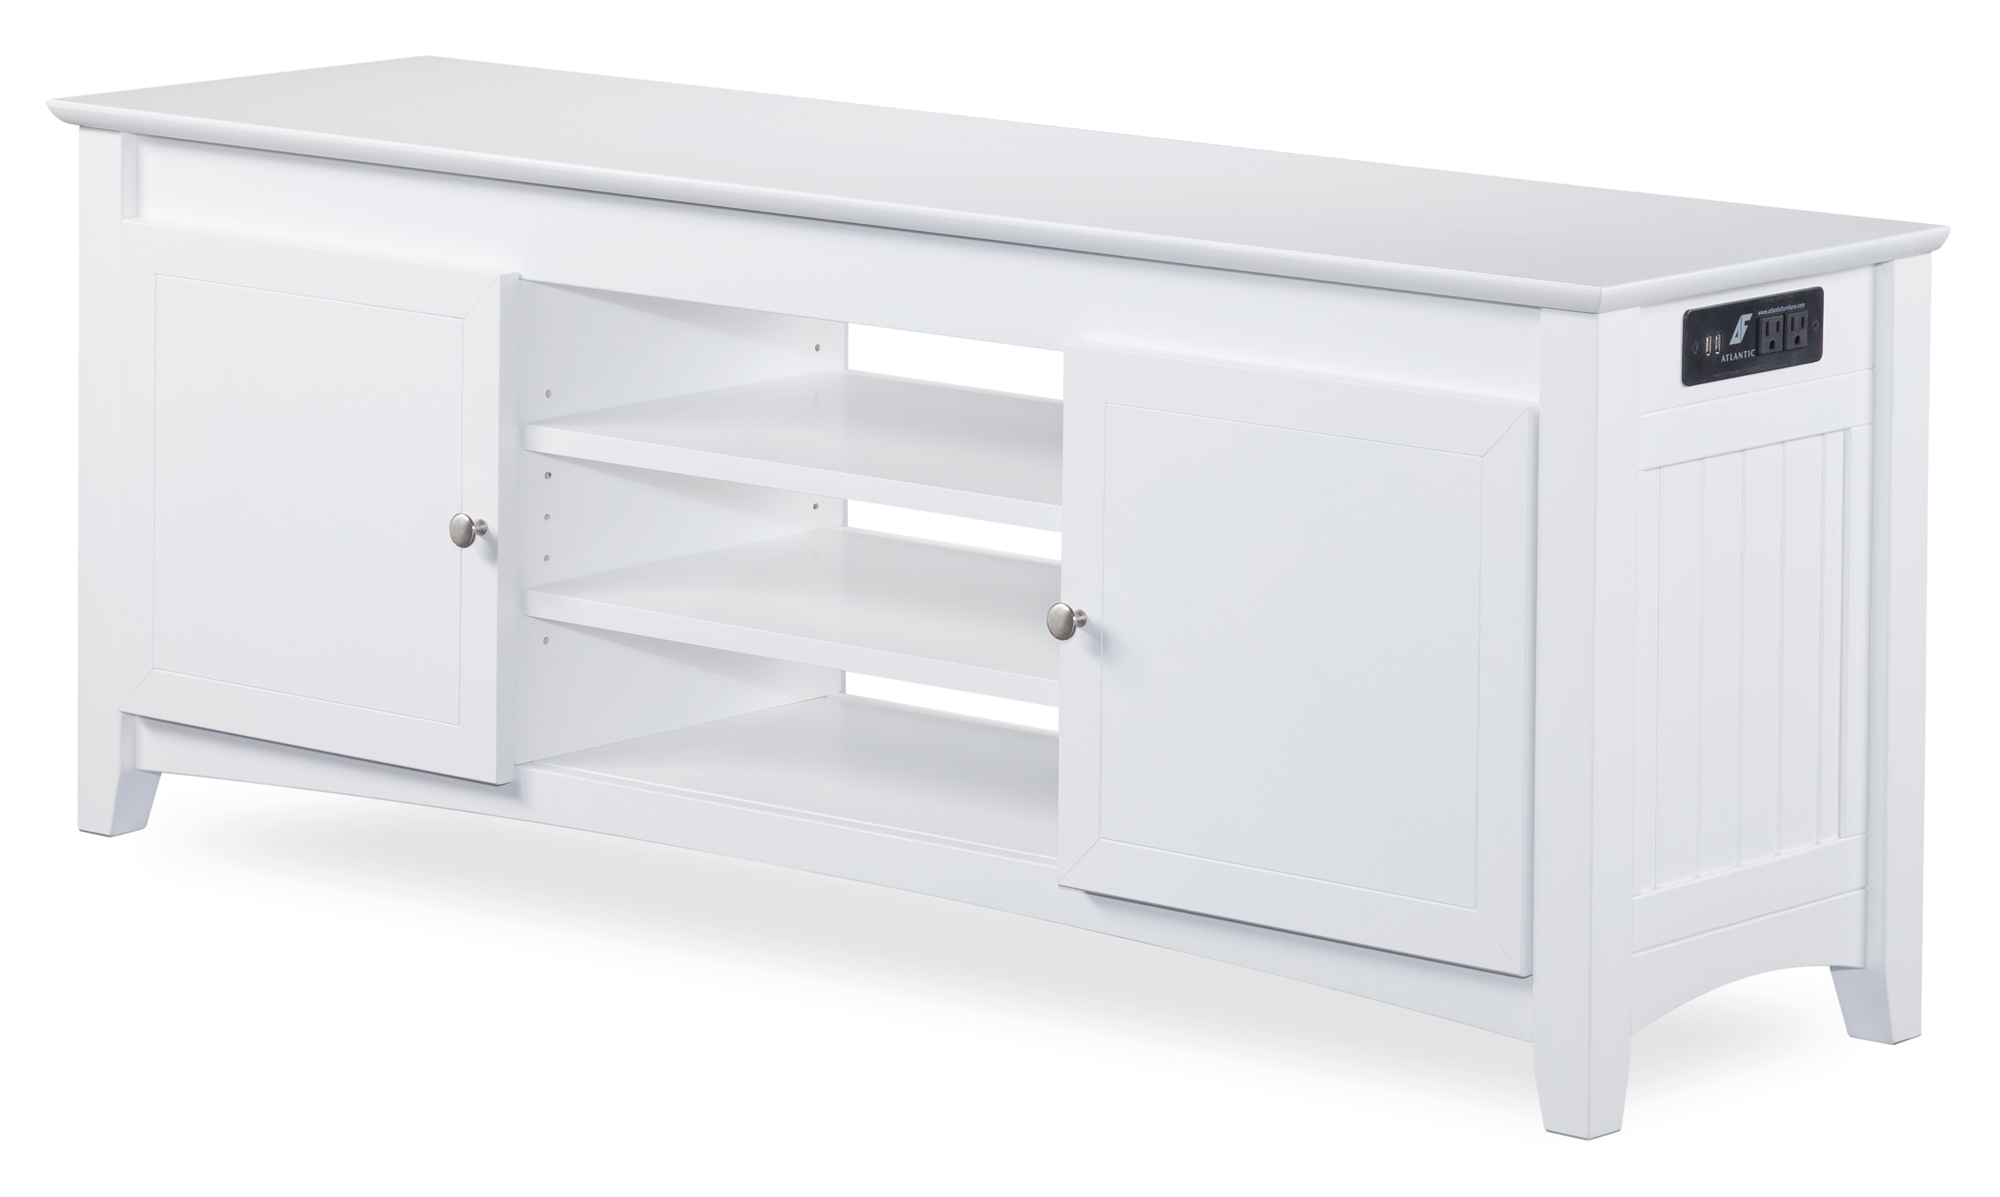 Nantucket TV Table 24x60 with Adjustable Shelves and Charging Station in White by Atlantic Furniture